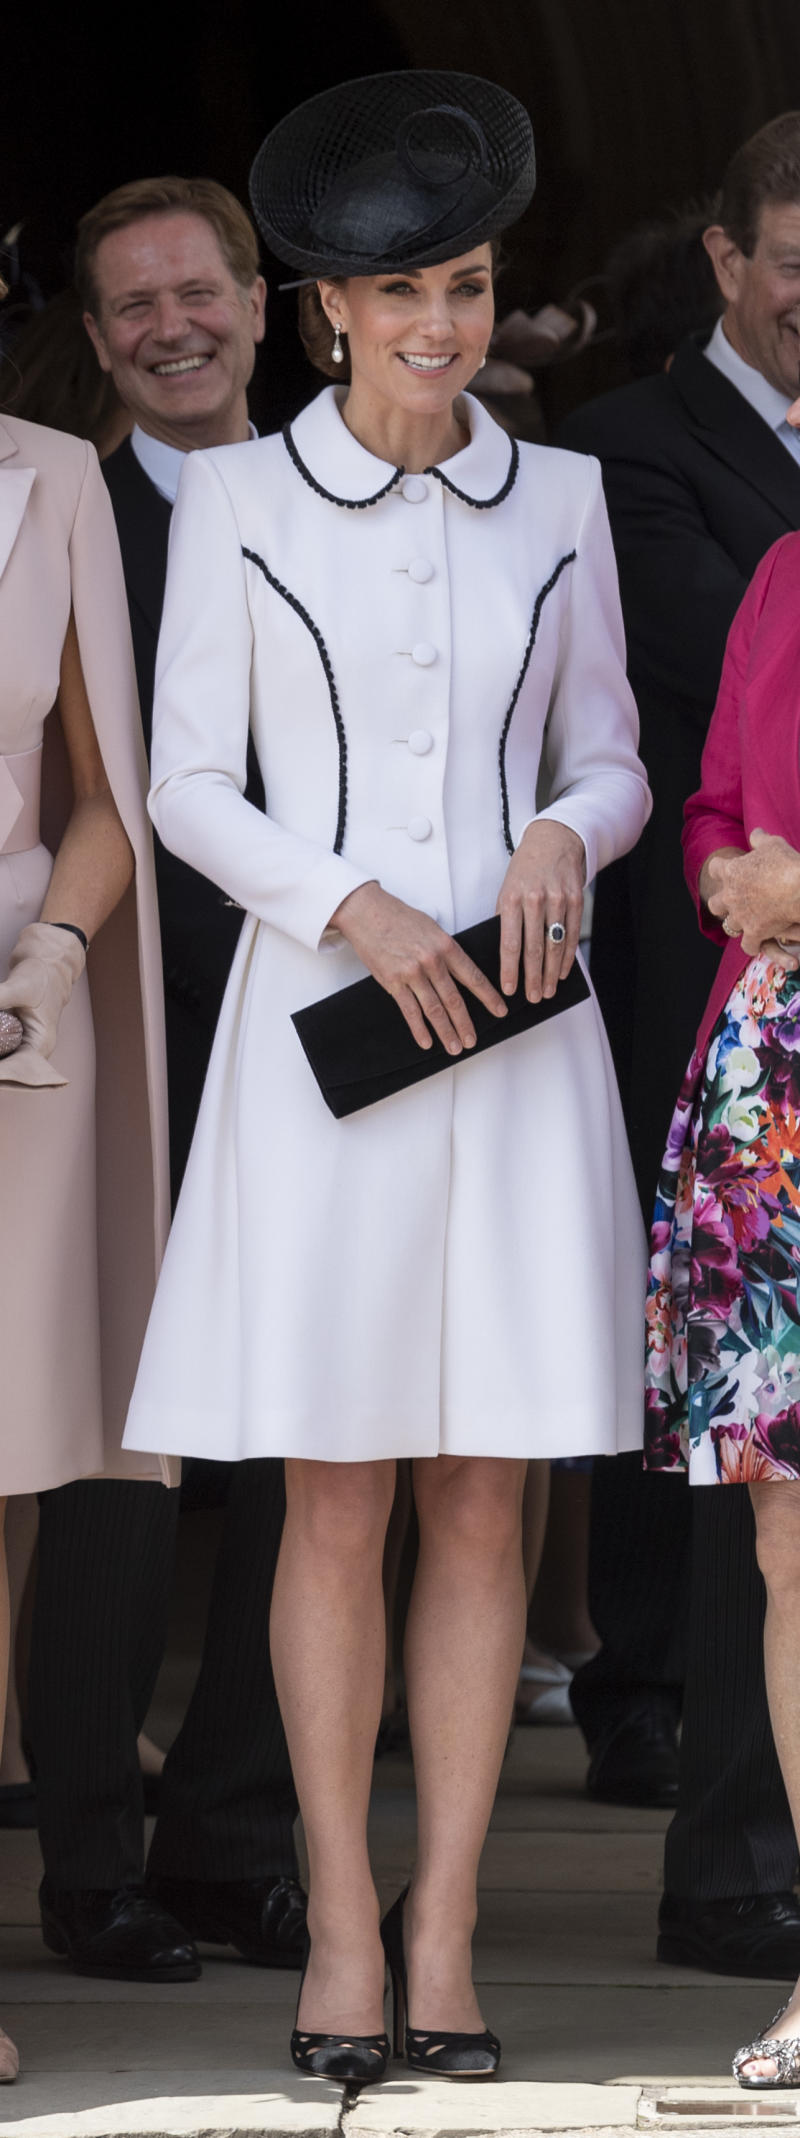 Catherine, Duchess of Cambridge attends the Order of the Garter Service at St George's Chapel on June 17, 2019 in Windsor, England.